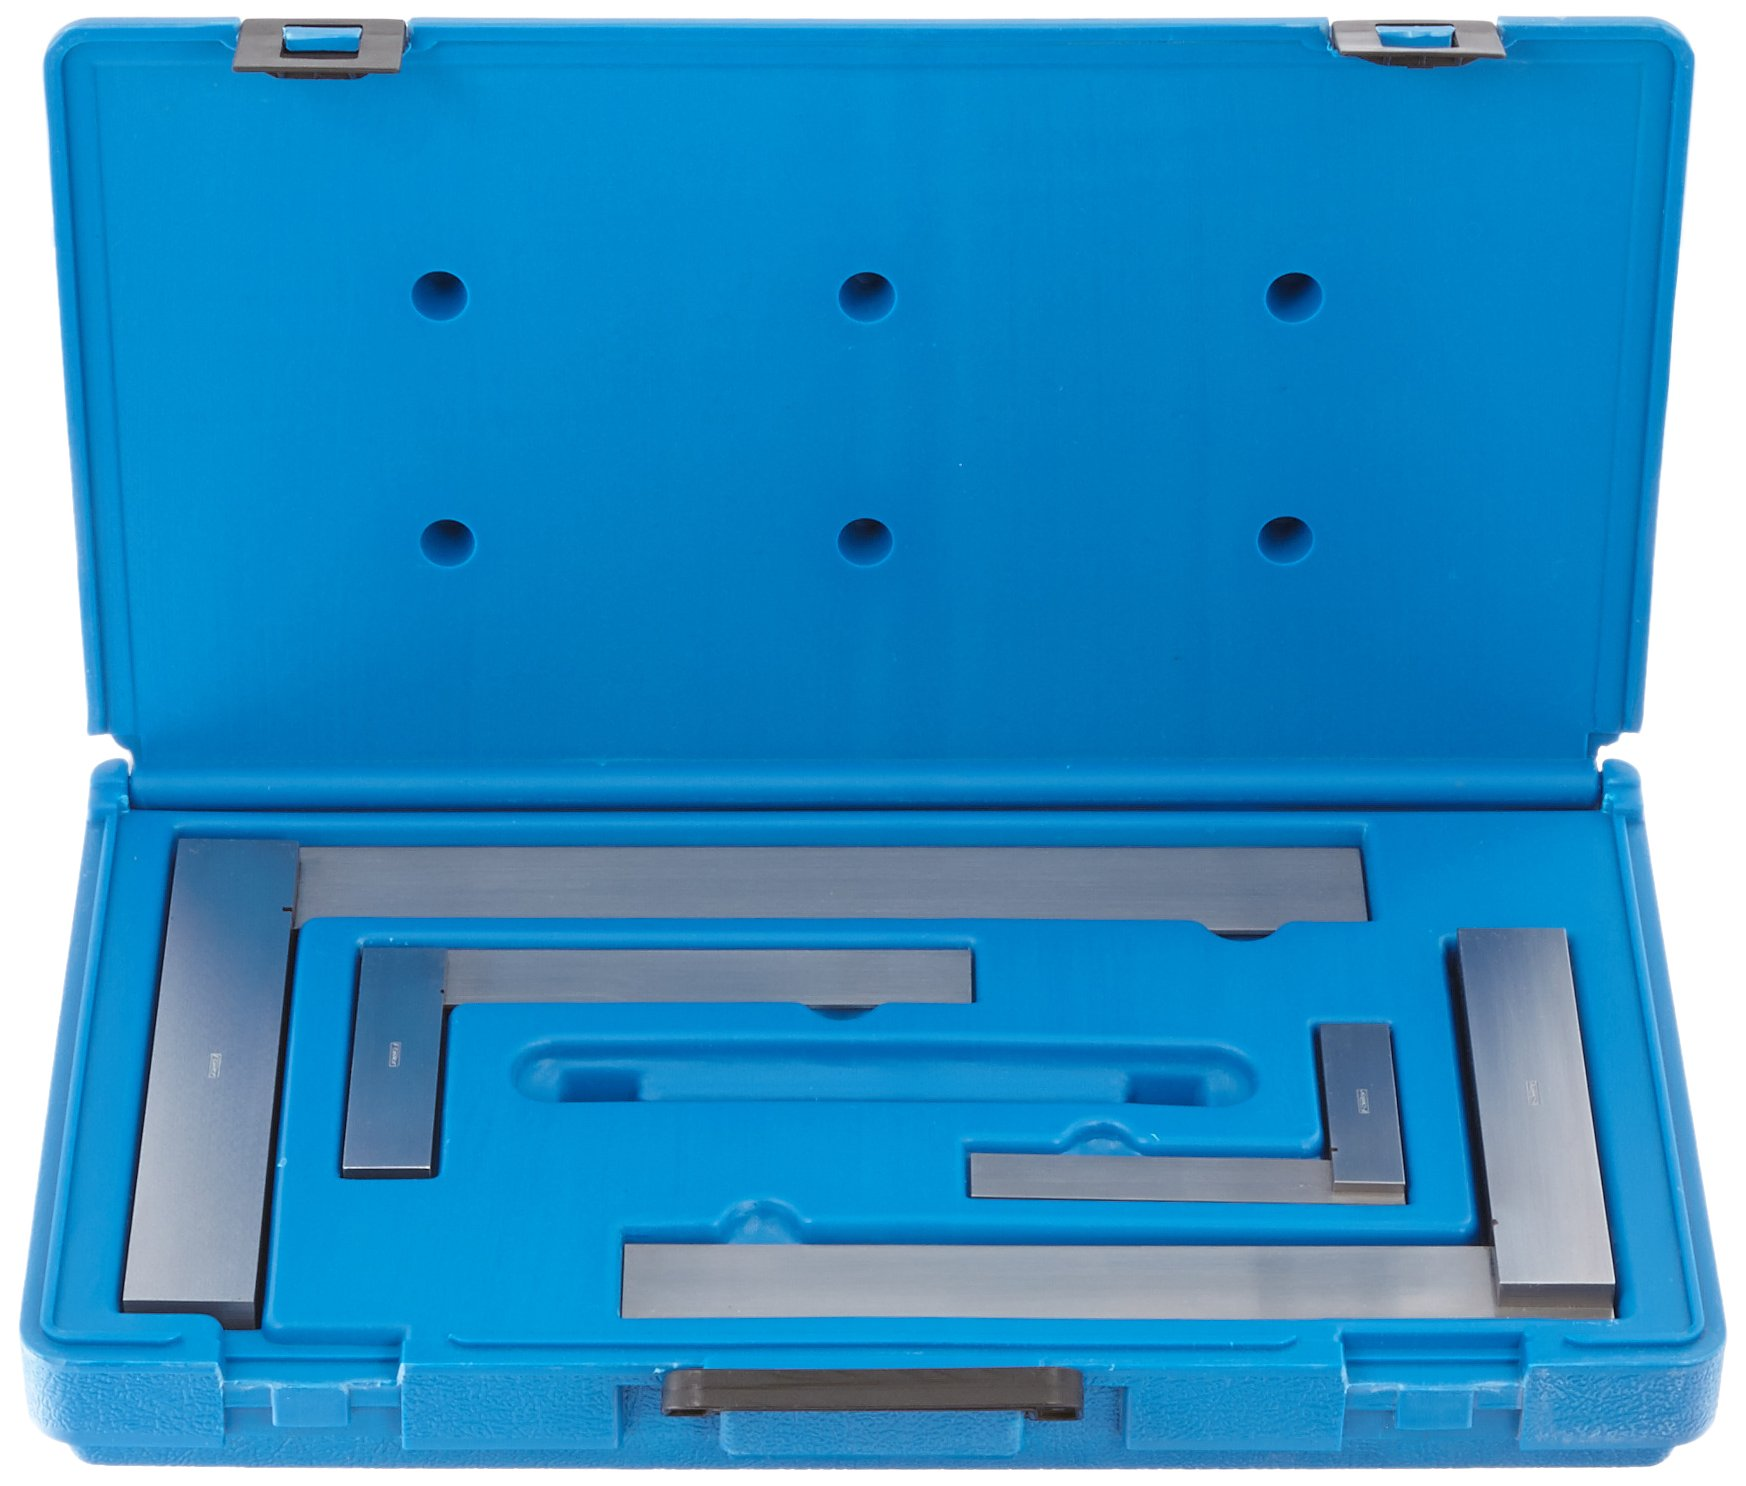 Fowler 52-432-469 Machinist Hardened Steel Square Set, 4'', 6'', 9'', 12'' Blade Size by Fowler (Image #2)